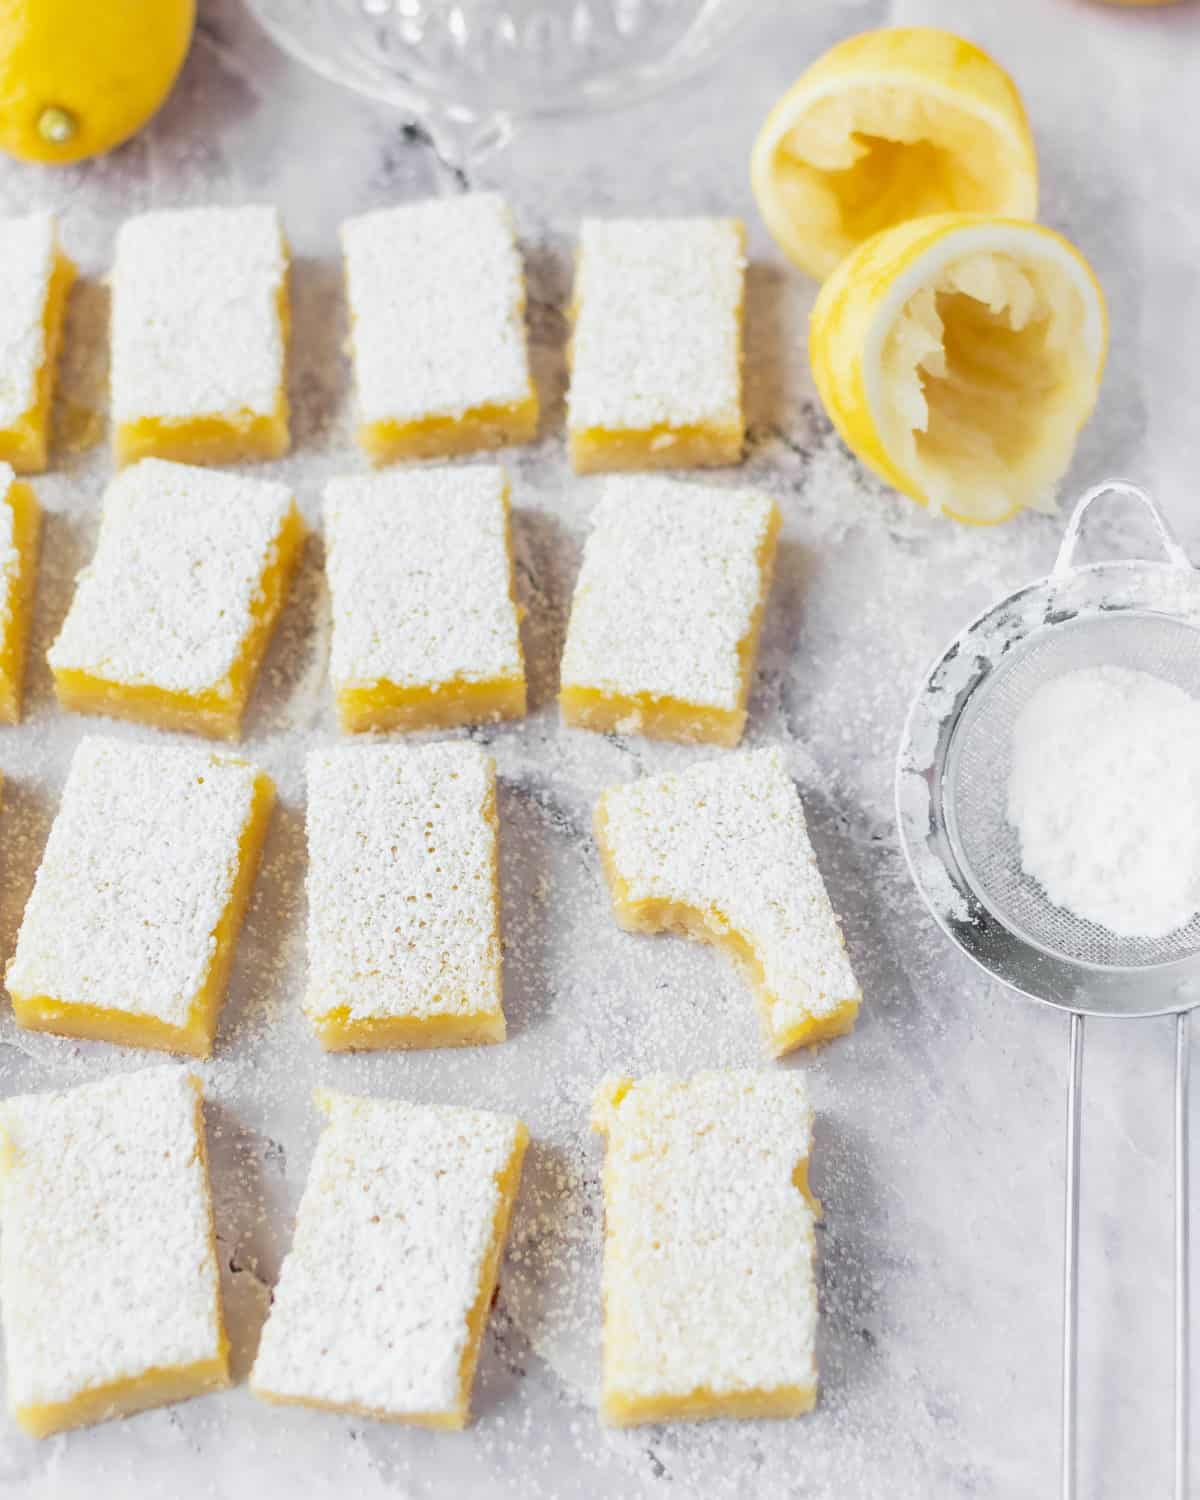 Several lemon bars spread out on a table.